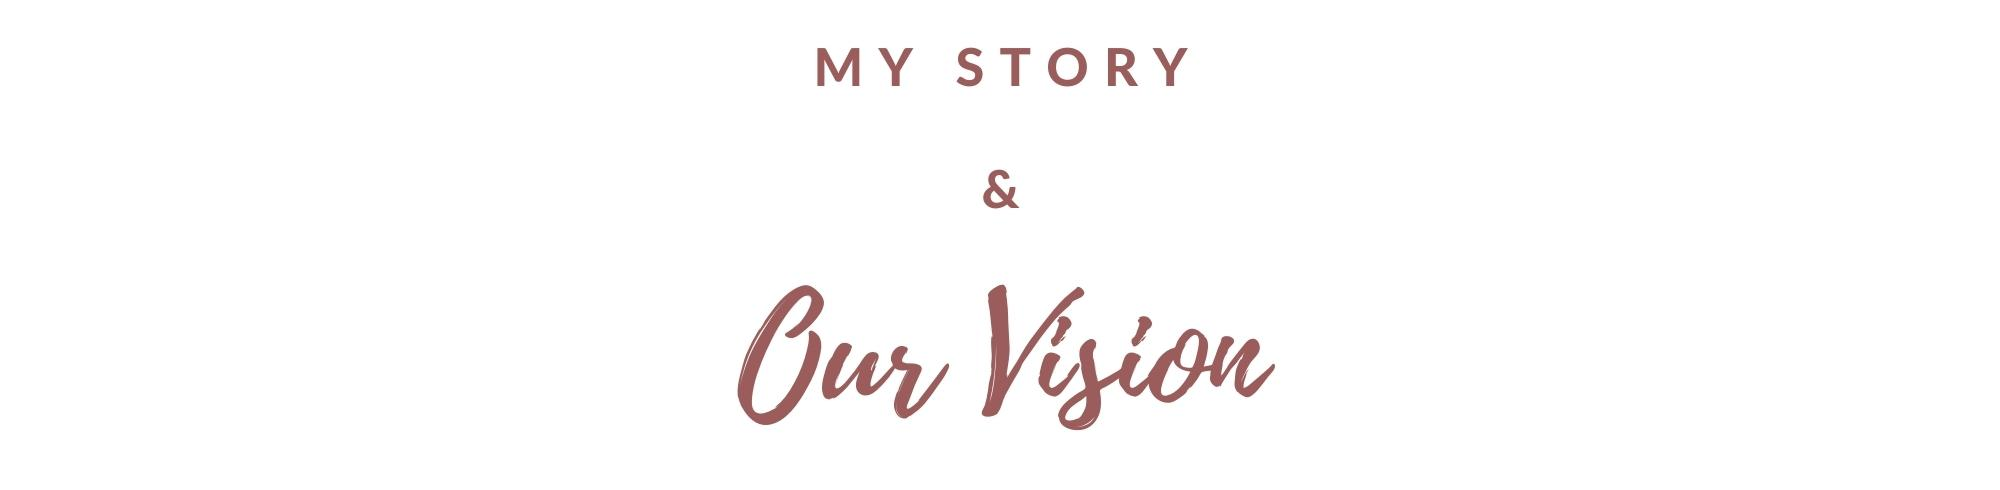 Banner Our Vision